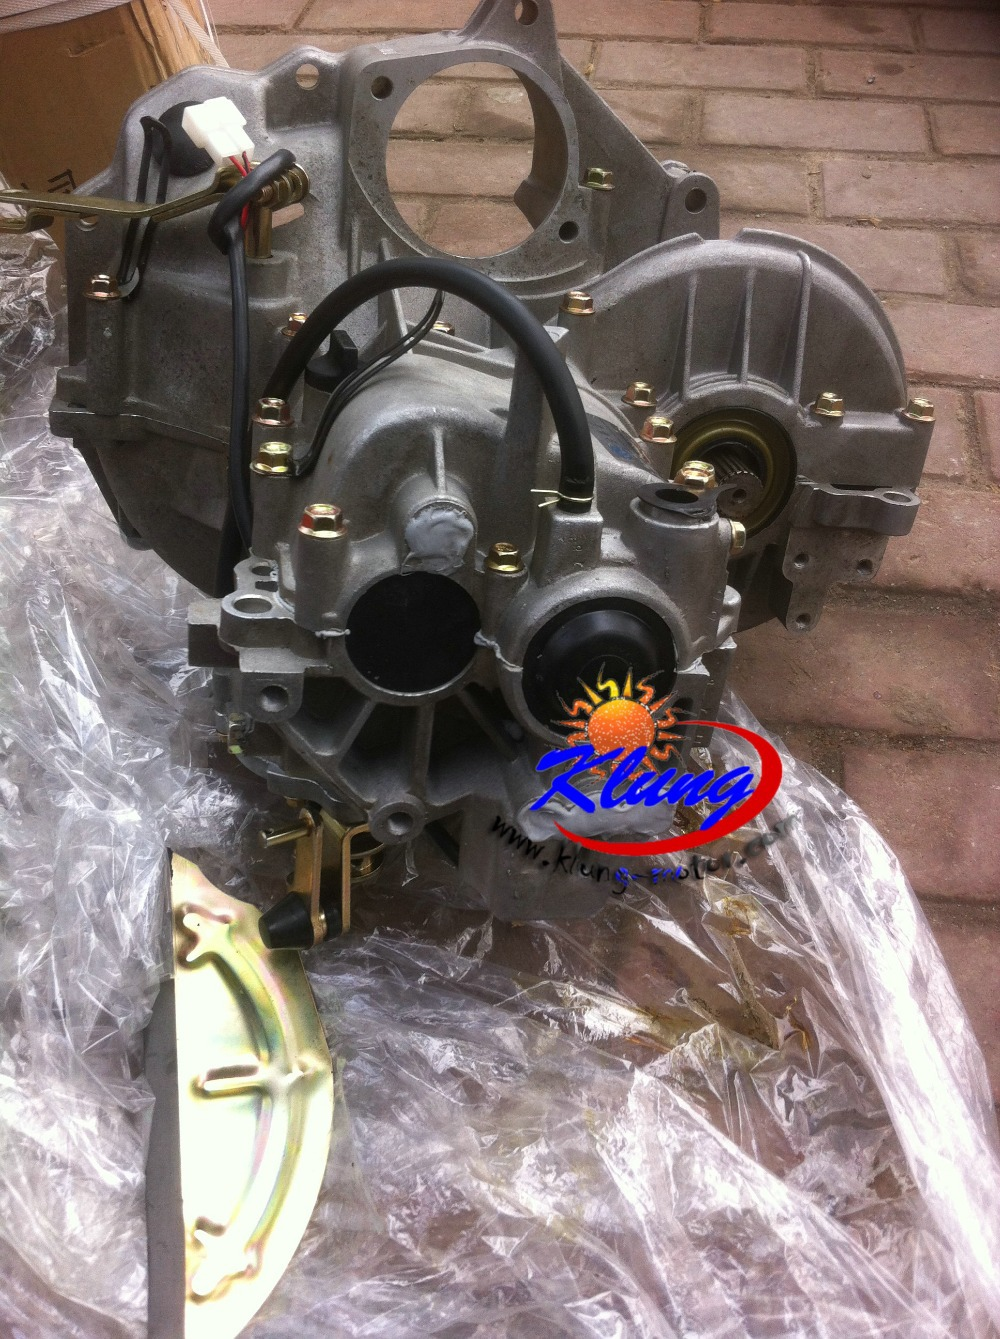 Forward Reverse Transmission : Reverse gearbox for go kart free engine image